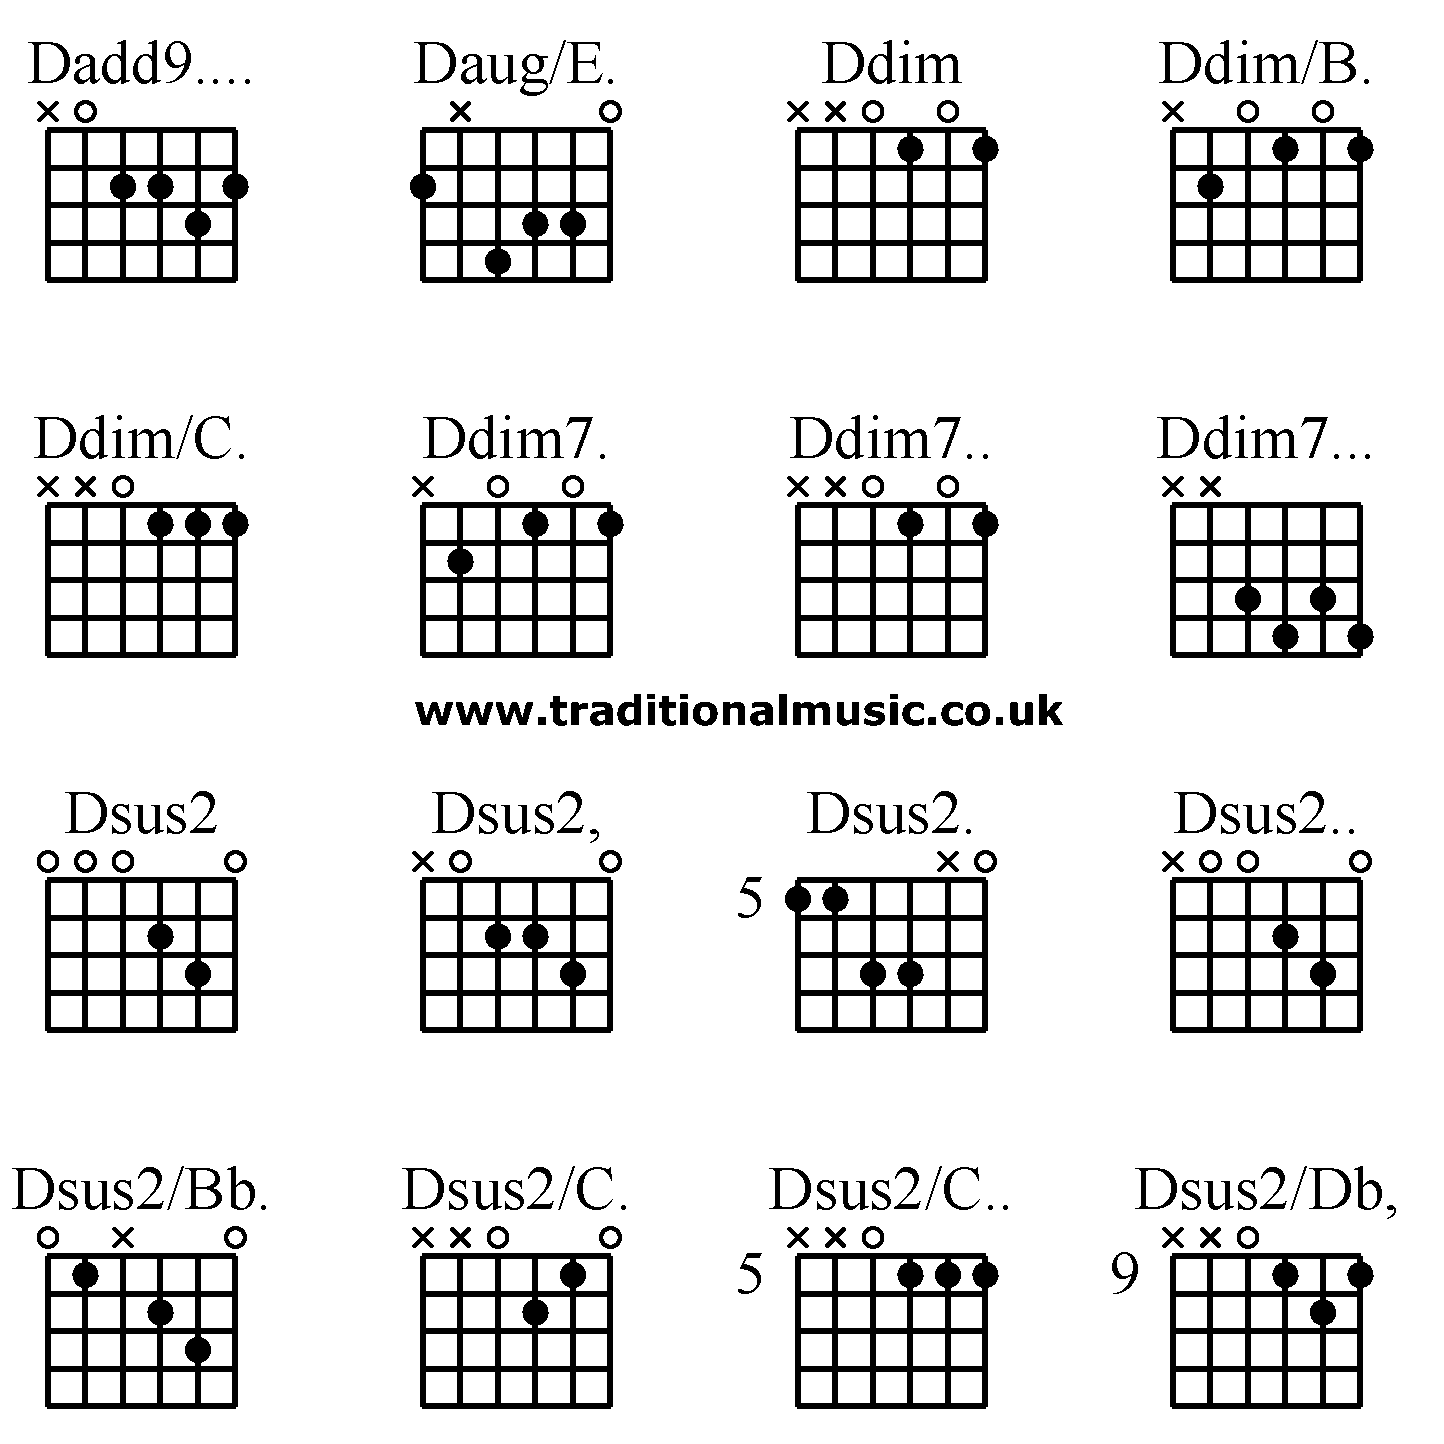 Guitar Chords Advanced Dadd9 Dauge Ddim Ddimb Ddimc Ddim7